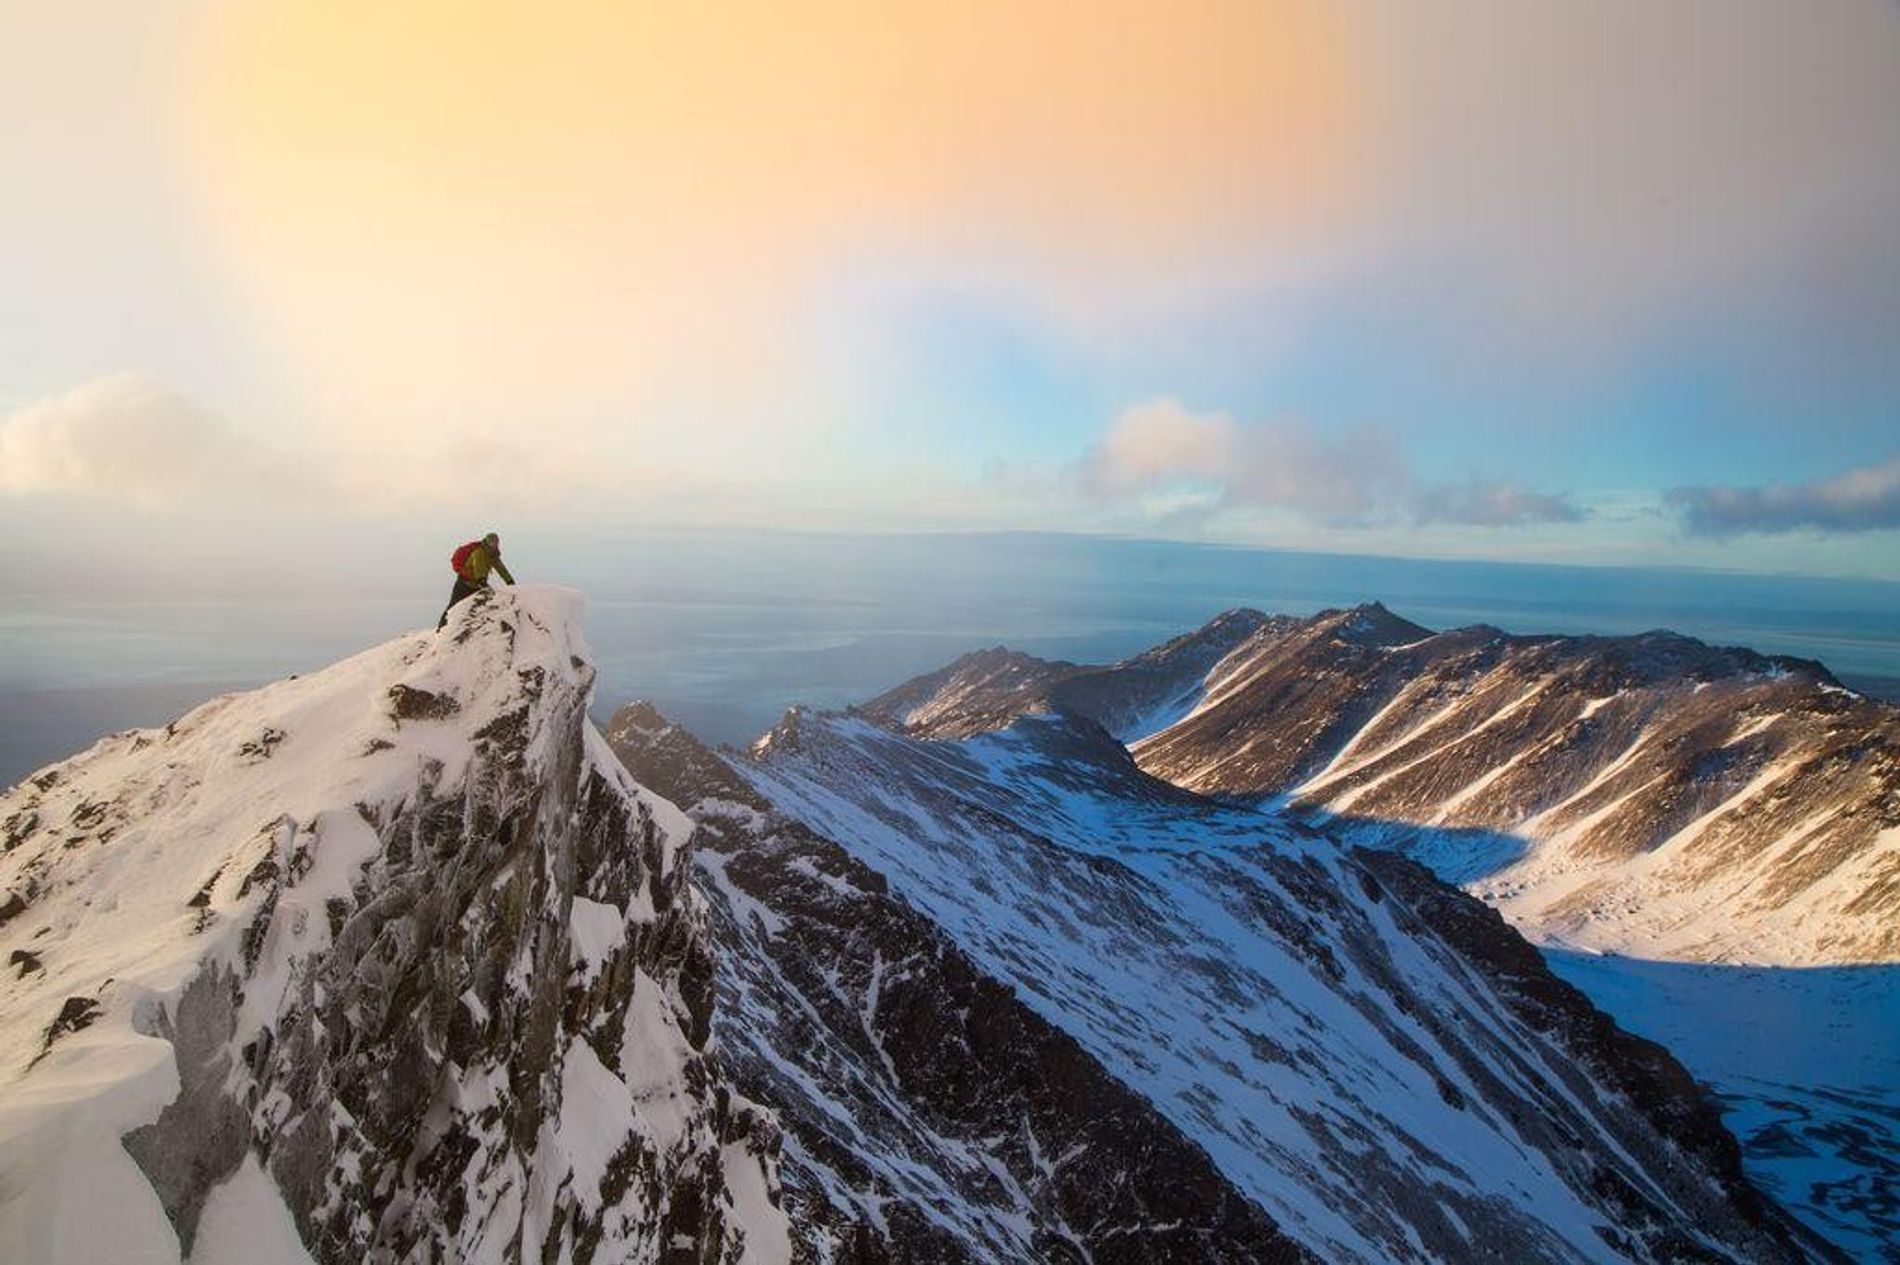 This photo was taken while coming down off of South Suicide Peak, Chugach State Park, Alaska. ...